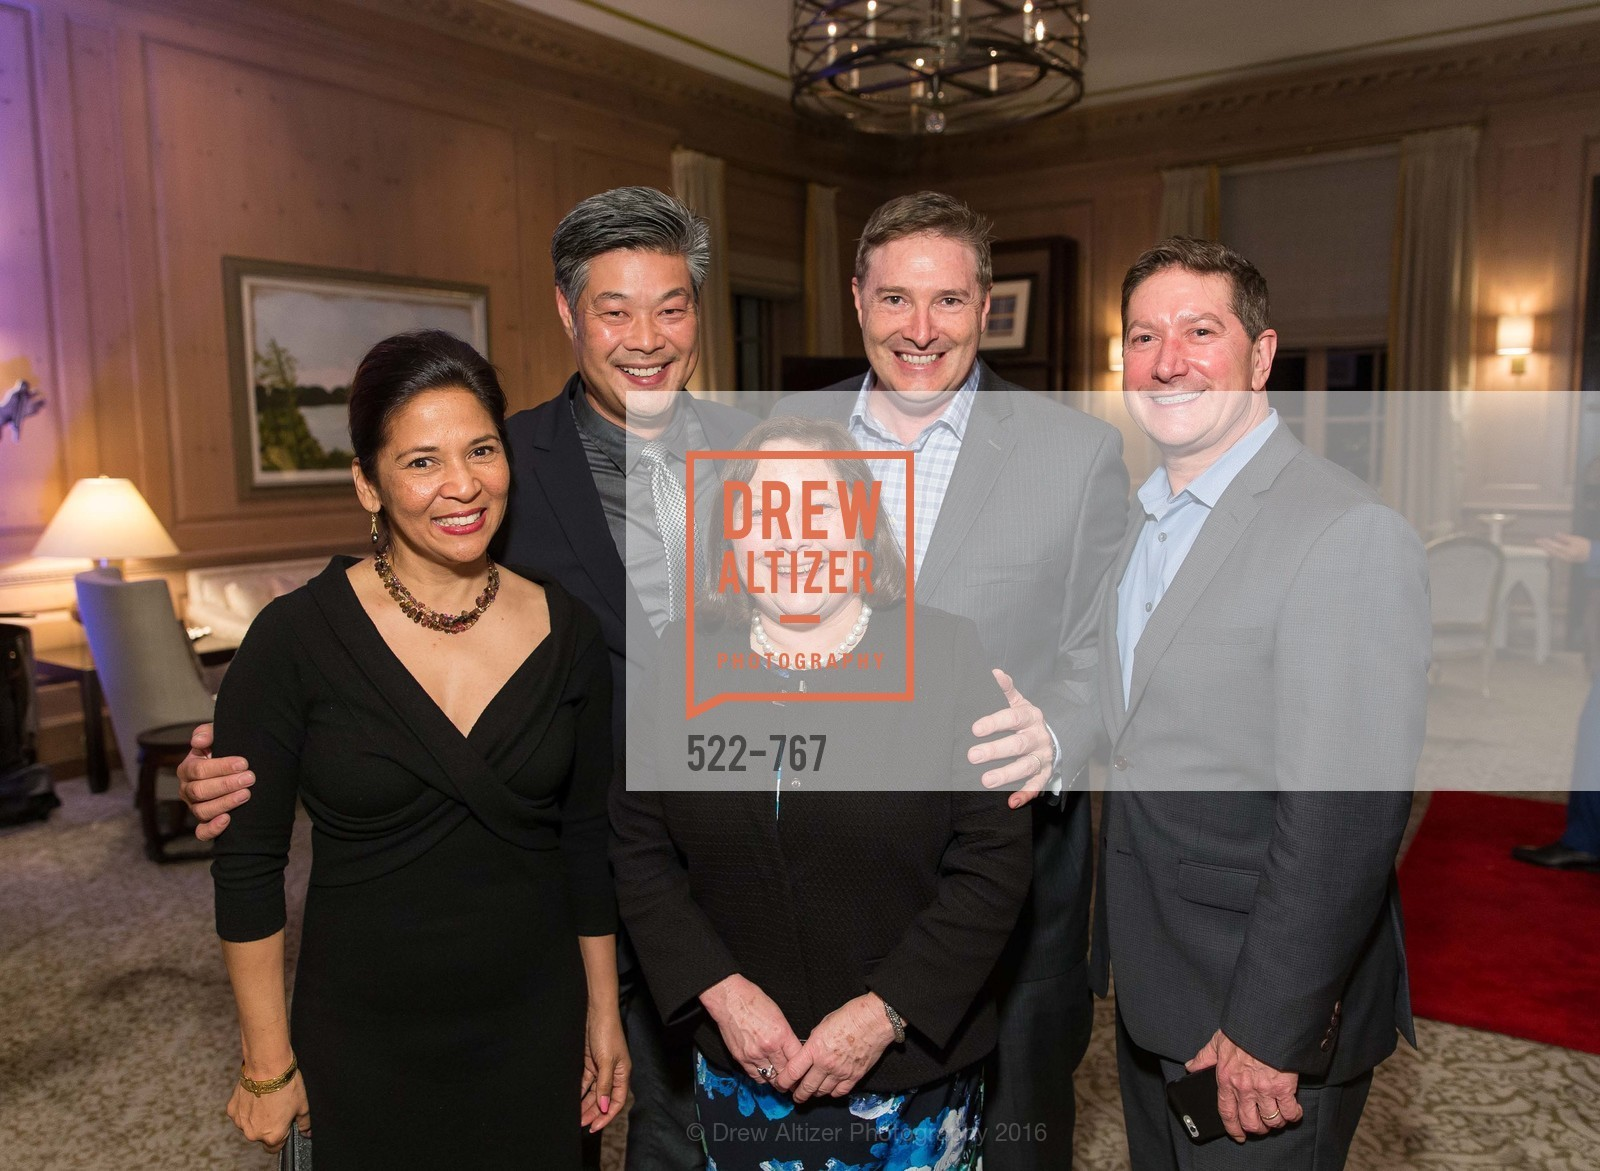 Darlene Fong, Rodney Fong, Martha Cohen, A Special Reception with Tony Bennett, The Fairmont, San Francisco, The Penthouse Suite, January 26th, 2016,Drew Altizer, Drew Altizer Photography, full-service event agency, private events, San Francisco photographer, photographer California